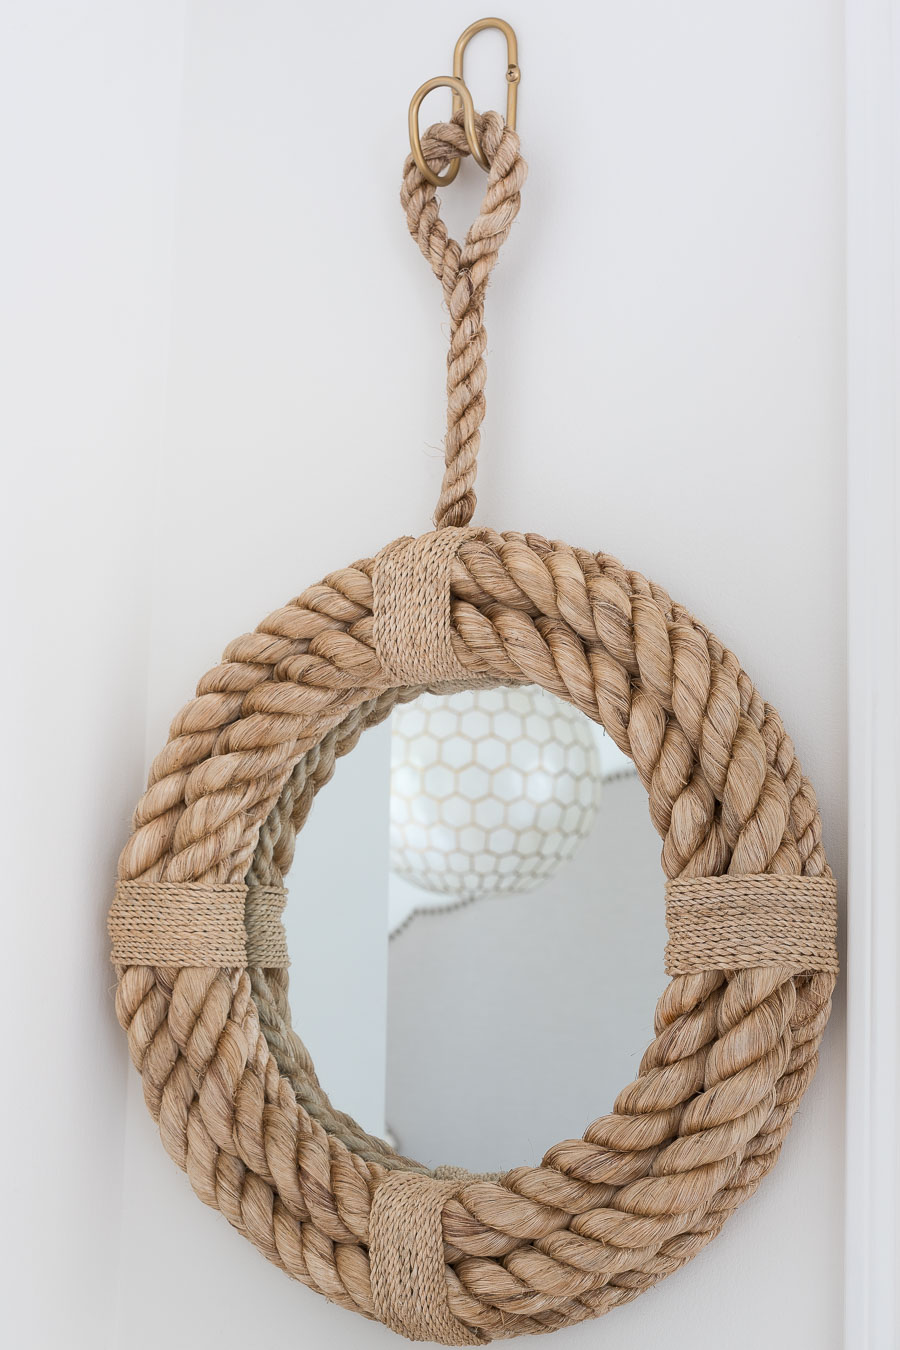 Darling round rope mirror that's perfect for a small entryway like this one going out to the garage!